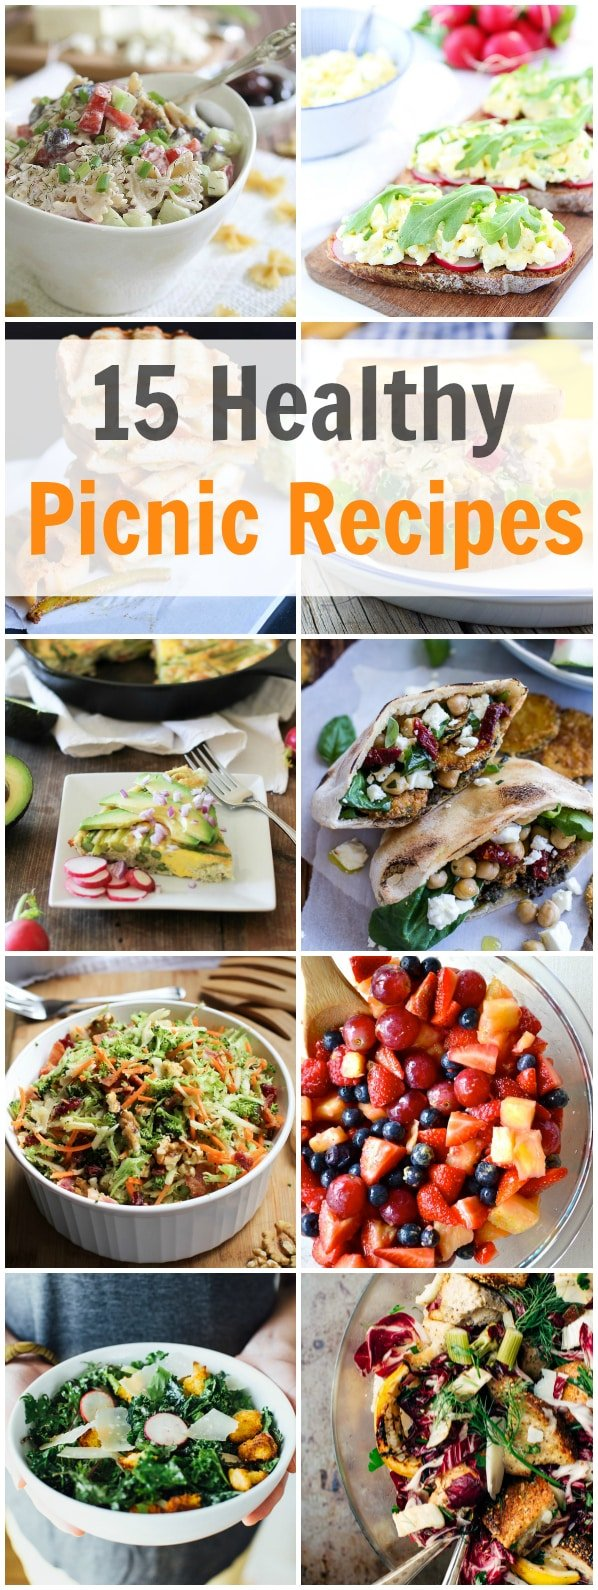 15 Healthy Picnic Recipes